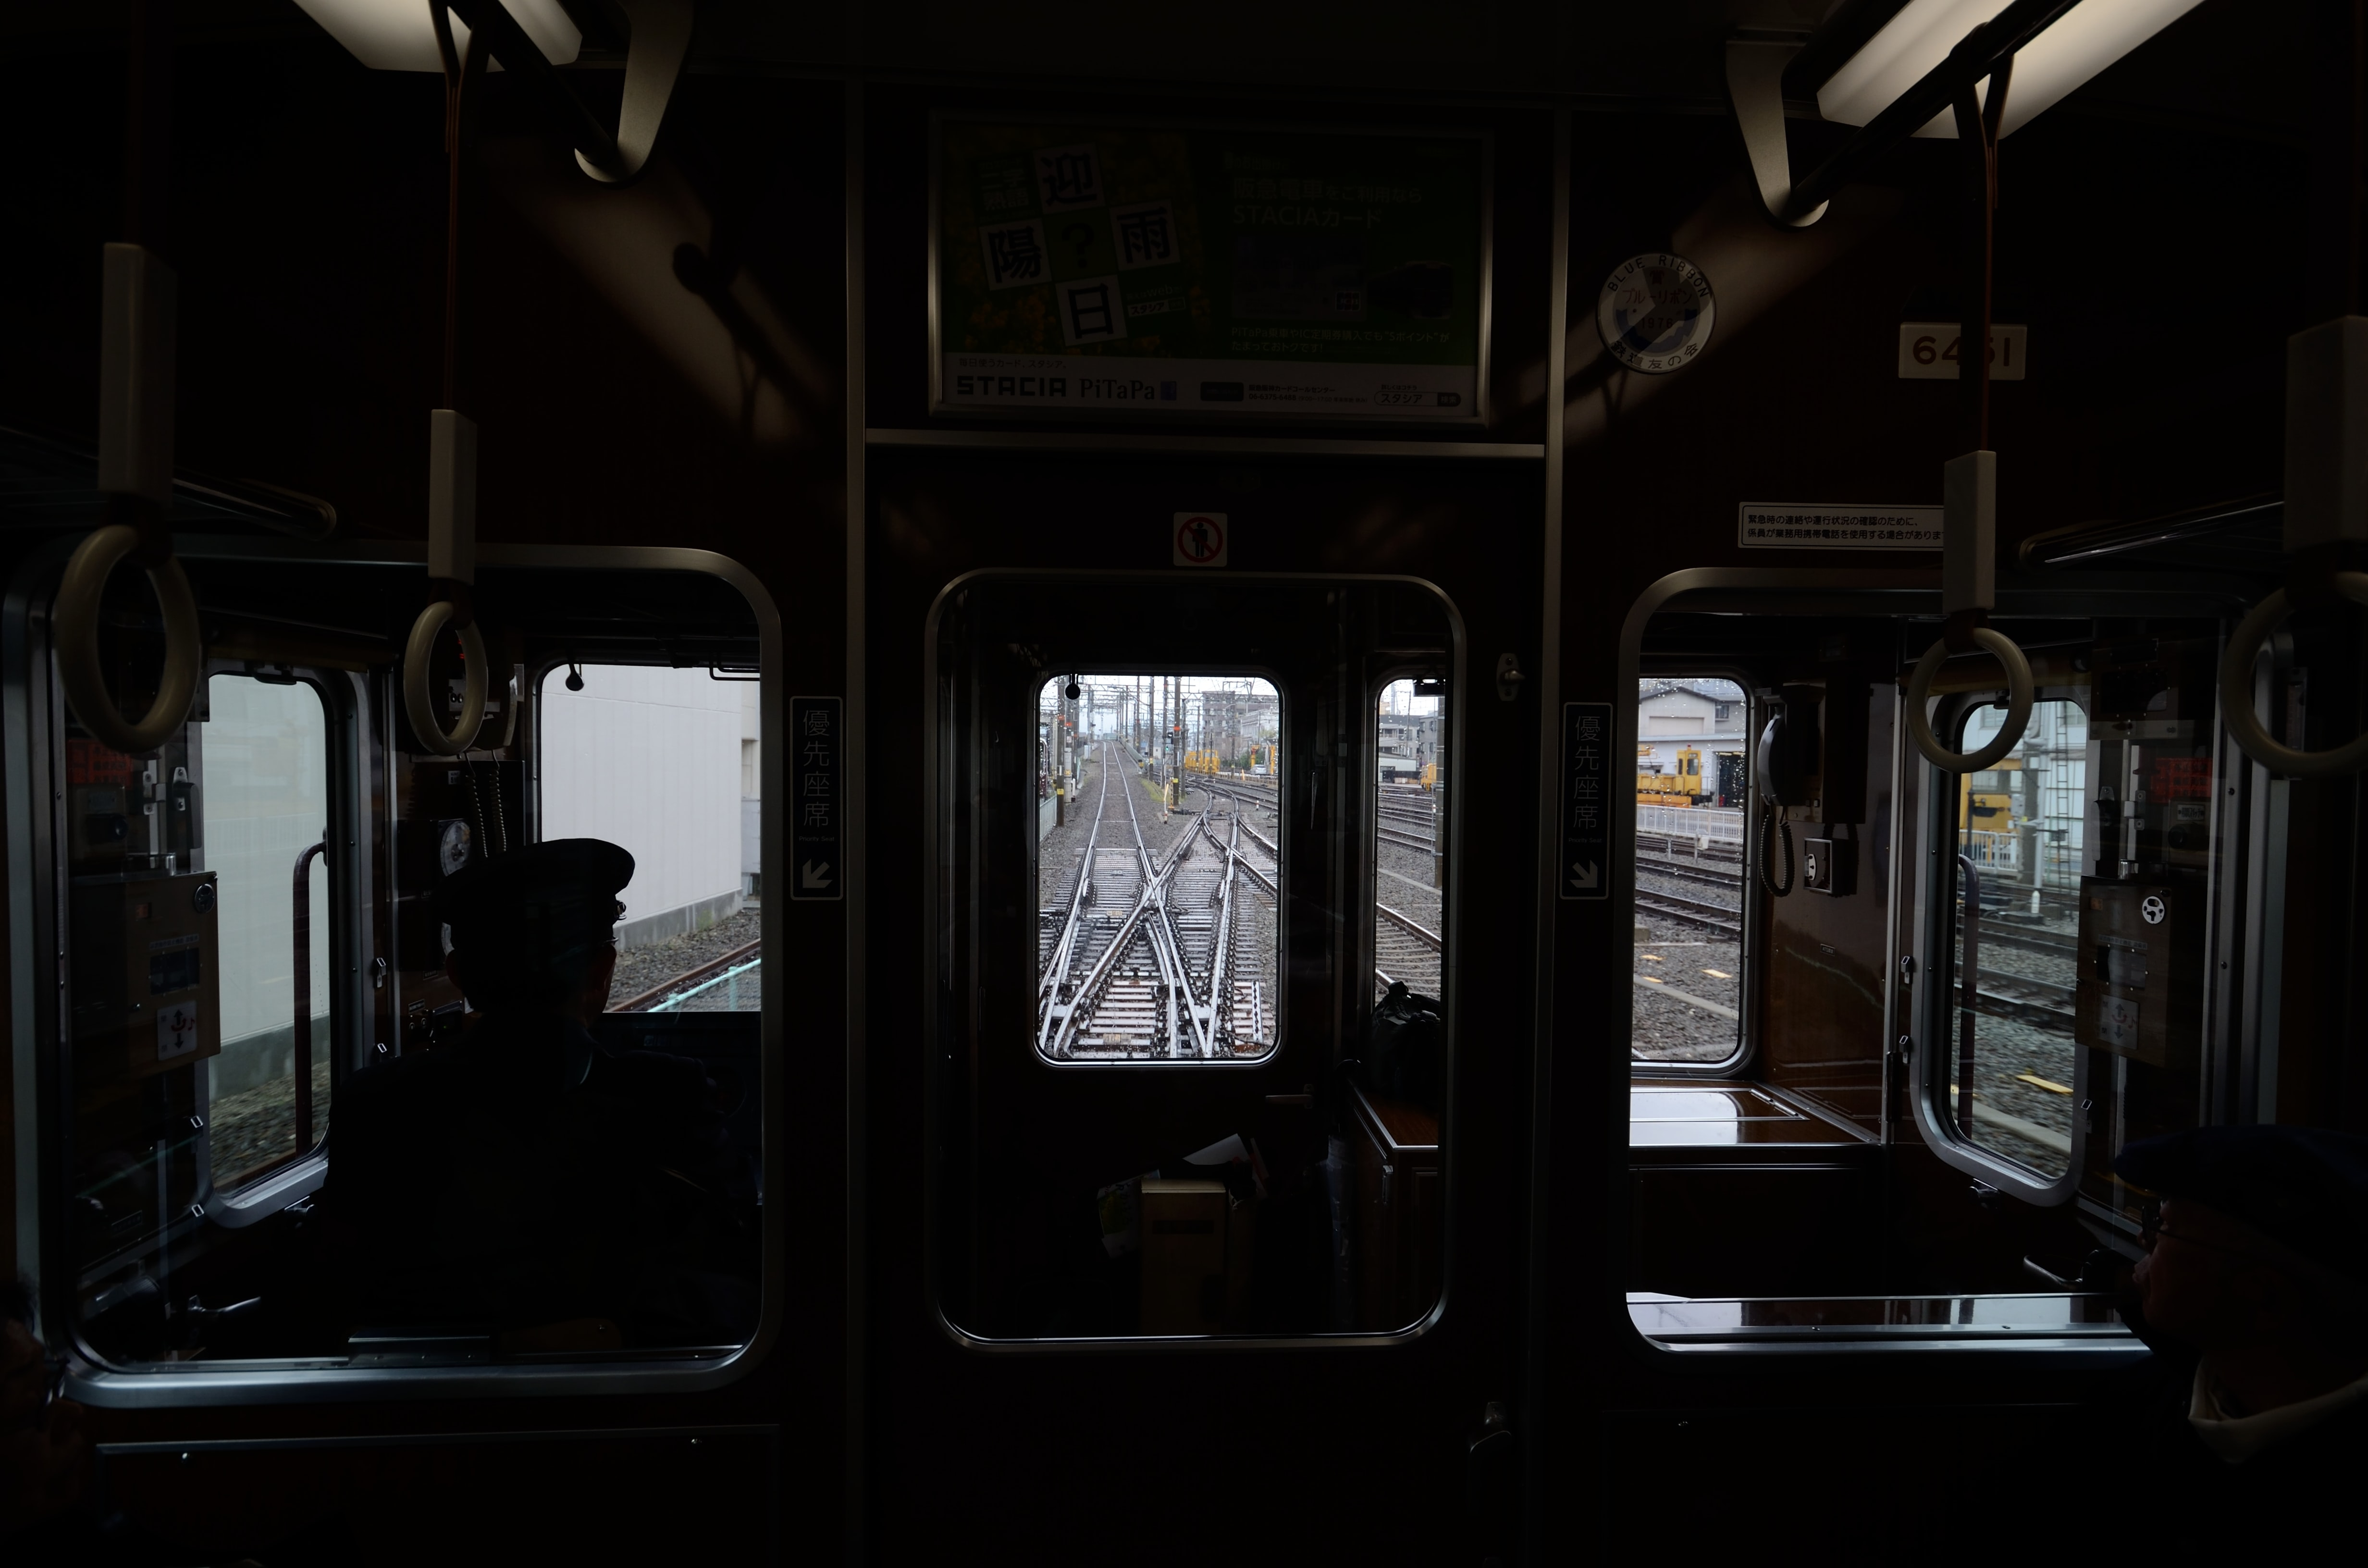 View from the front of a train on railway tracks